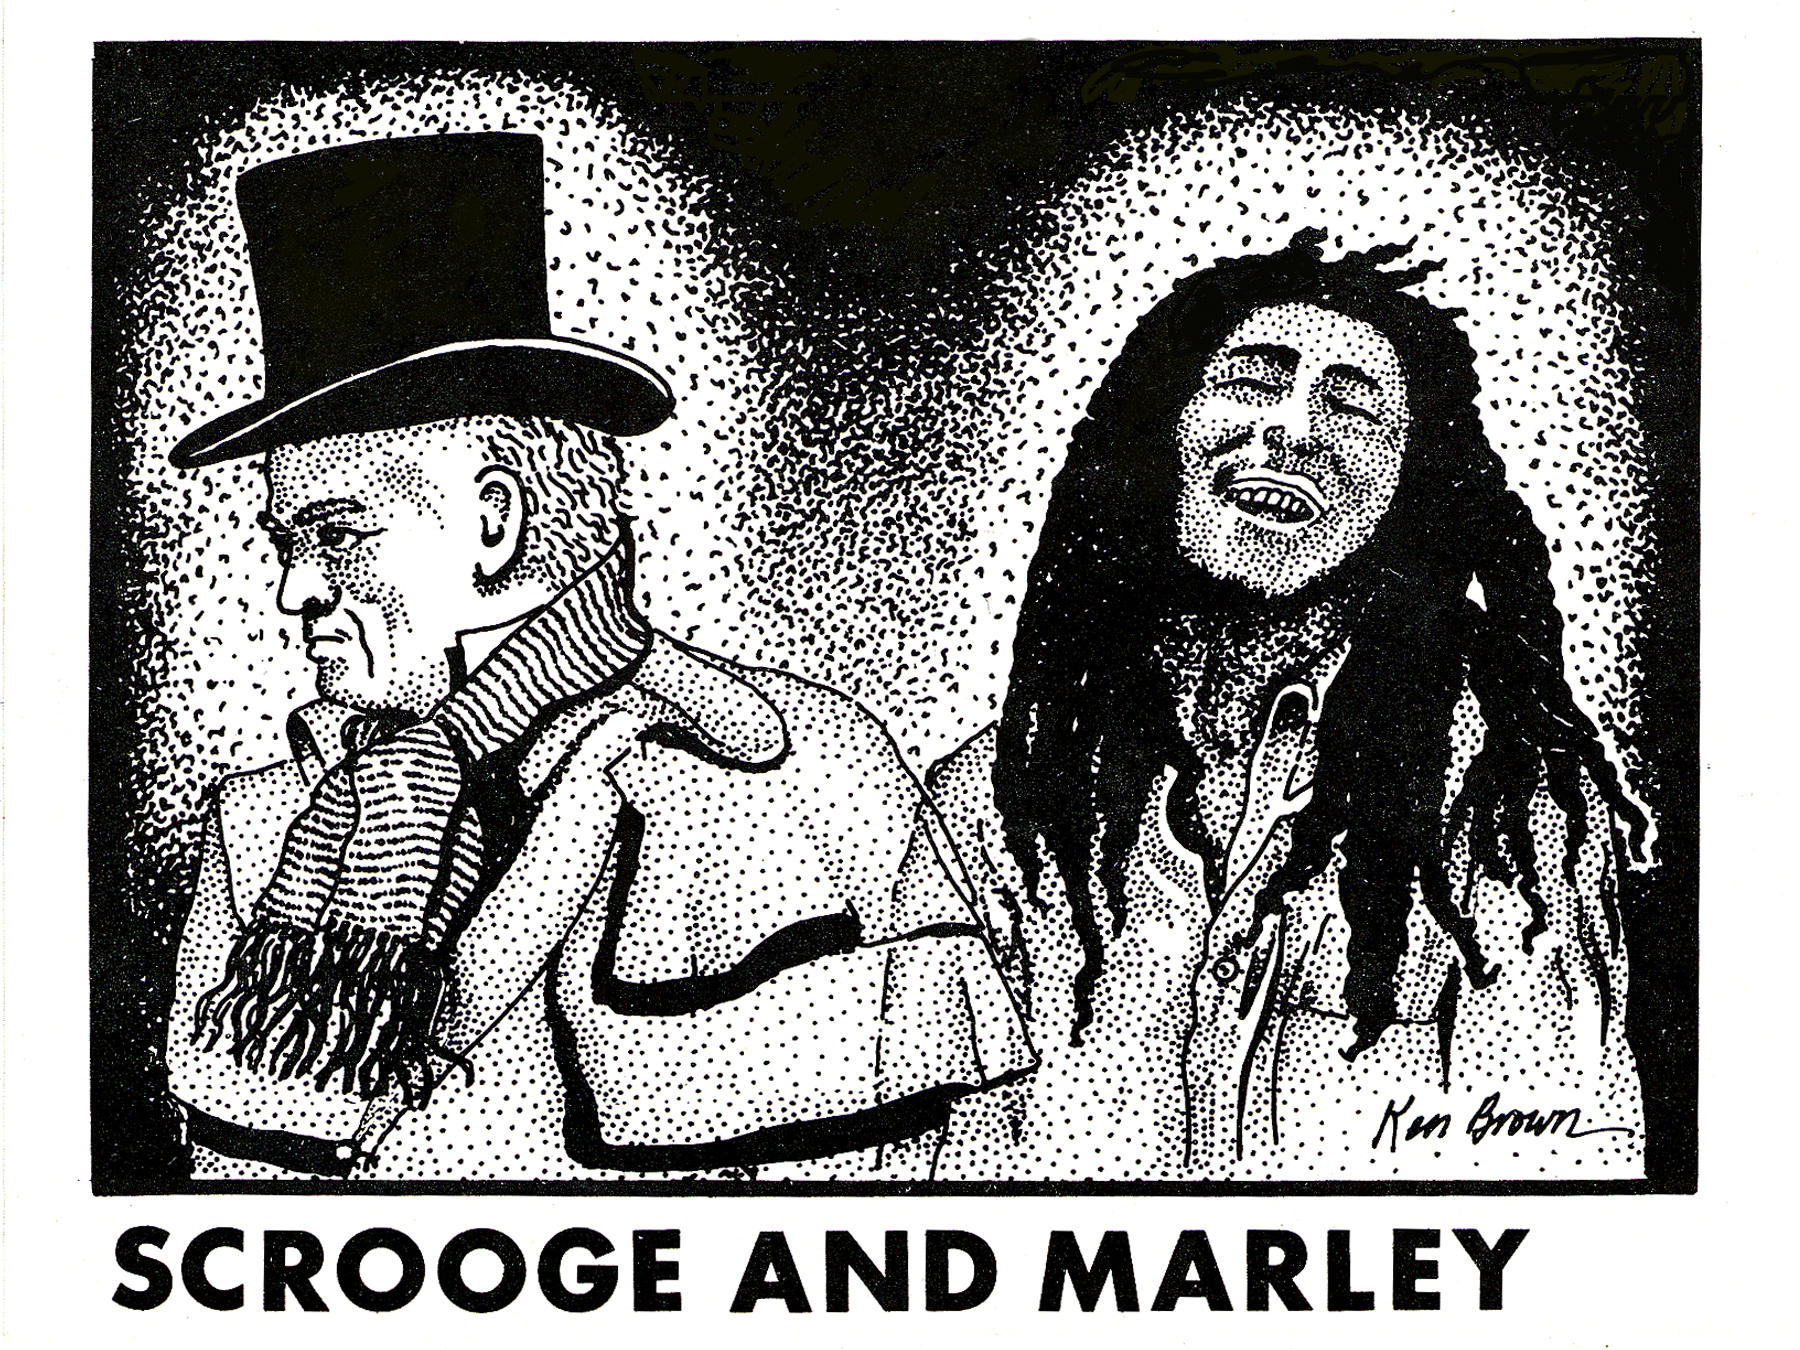 PC-CARTOON B_W-SCROOGE_MARLEY.jpg